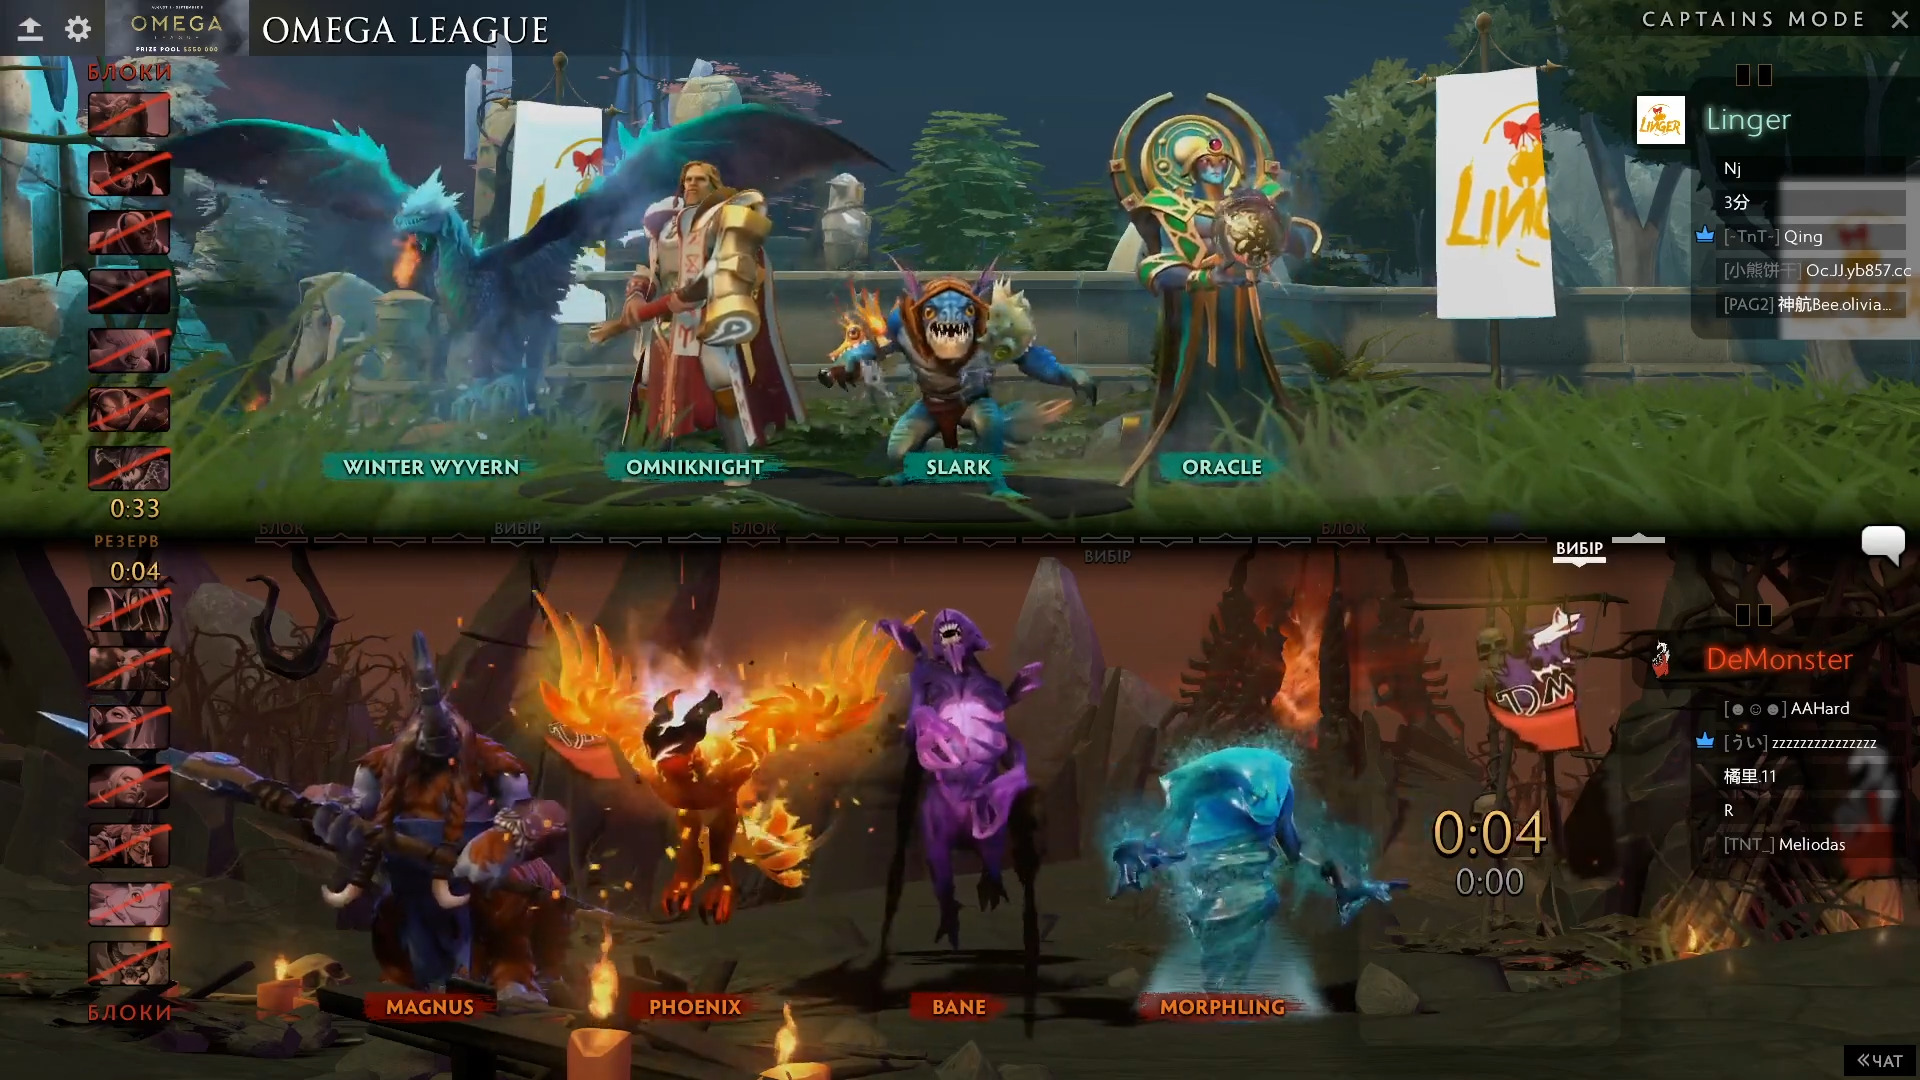 LING ER Ineligible To Compete From Omega League Behind WePlay! Esports Match-fixing Controversy